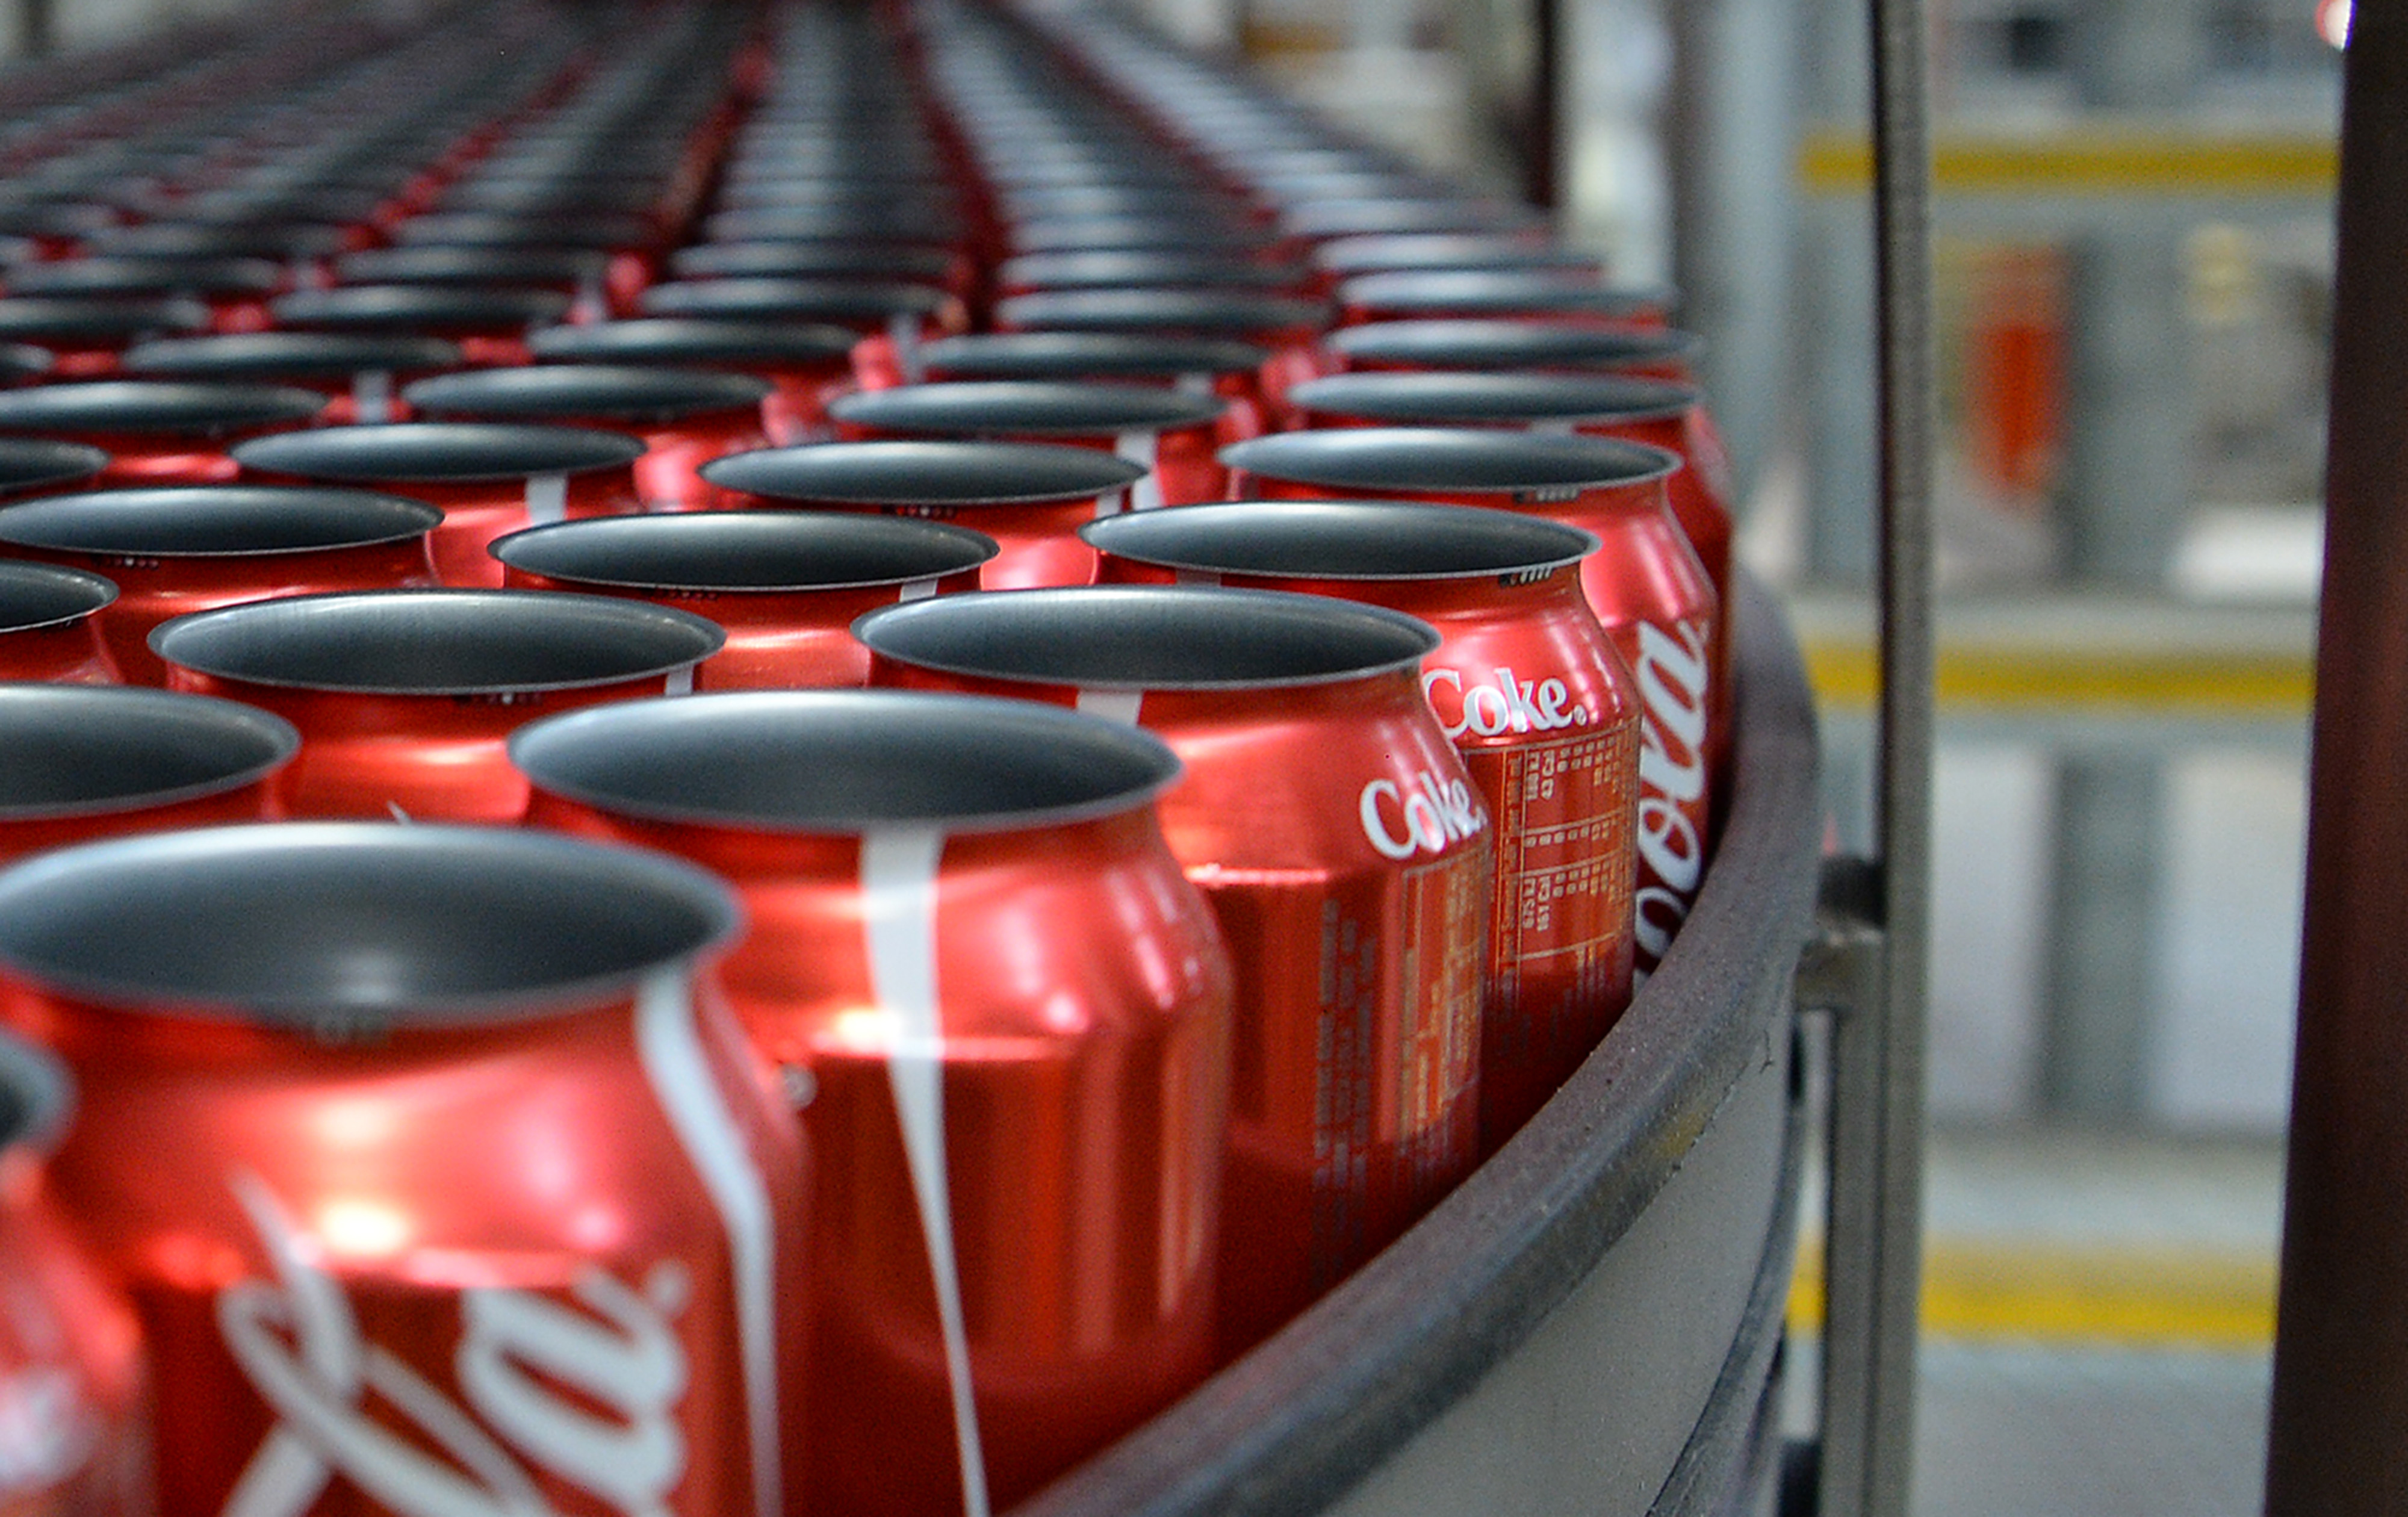 Empty Coca-Cola Classic cans move along a conveyor to be filled and sealed at a Coca-Cola Amatil Ltd. production facility in Melbourne, Australia, on Tuesday, Aug. 19, 2014.